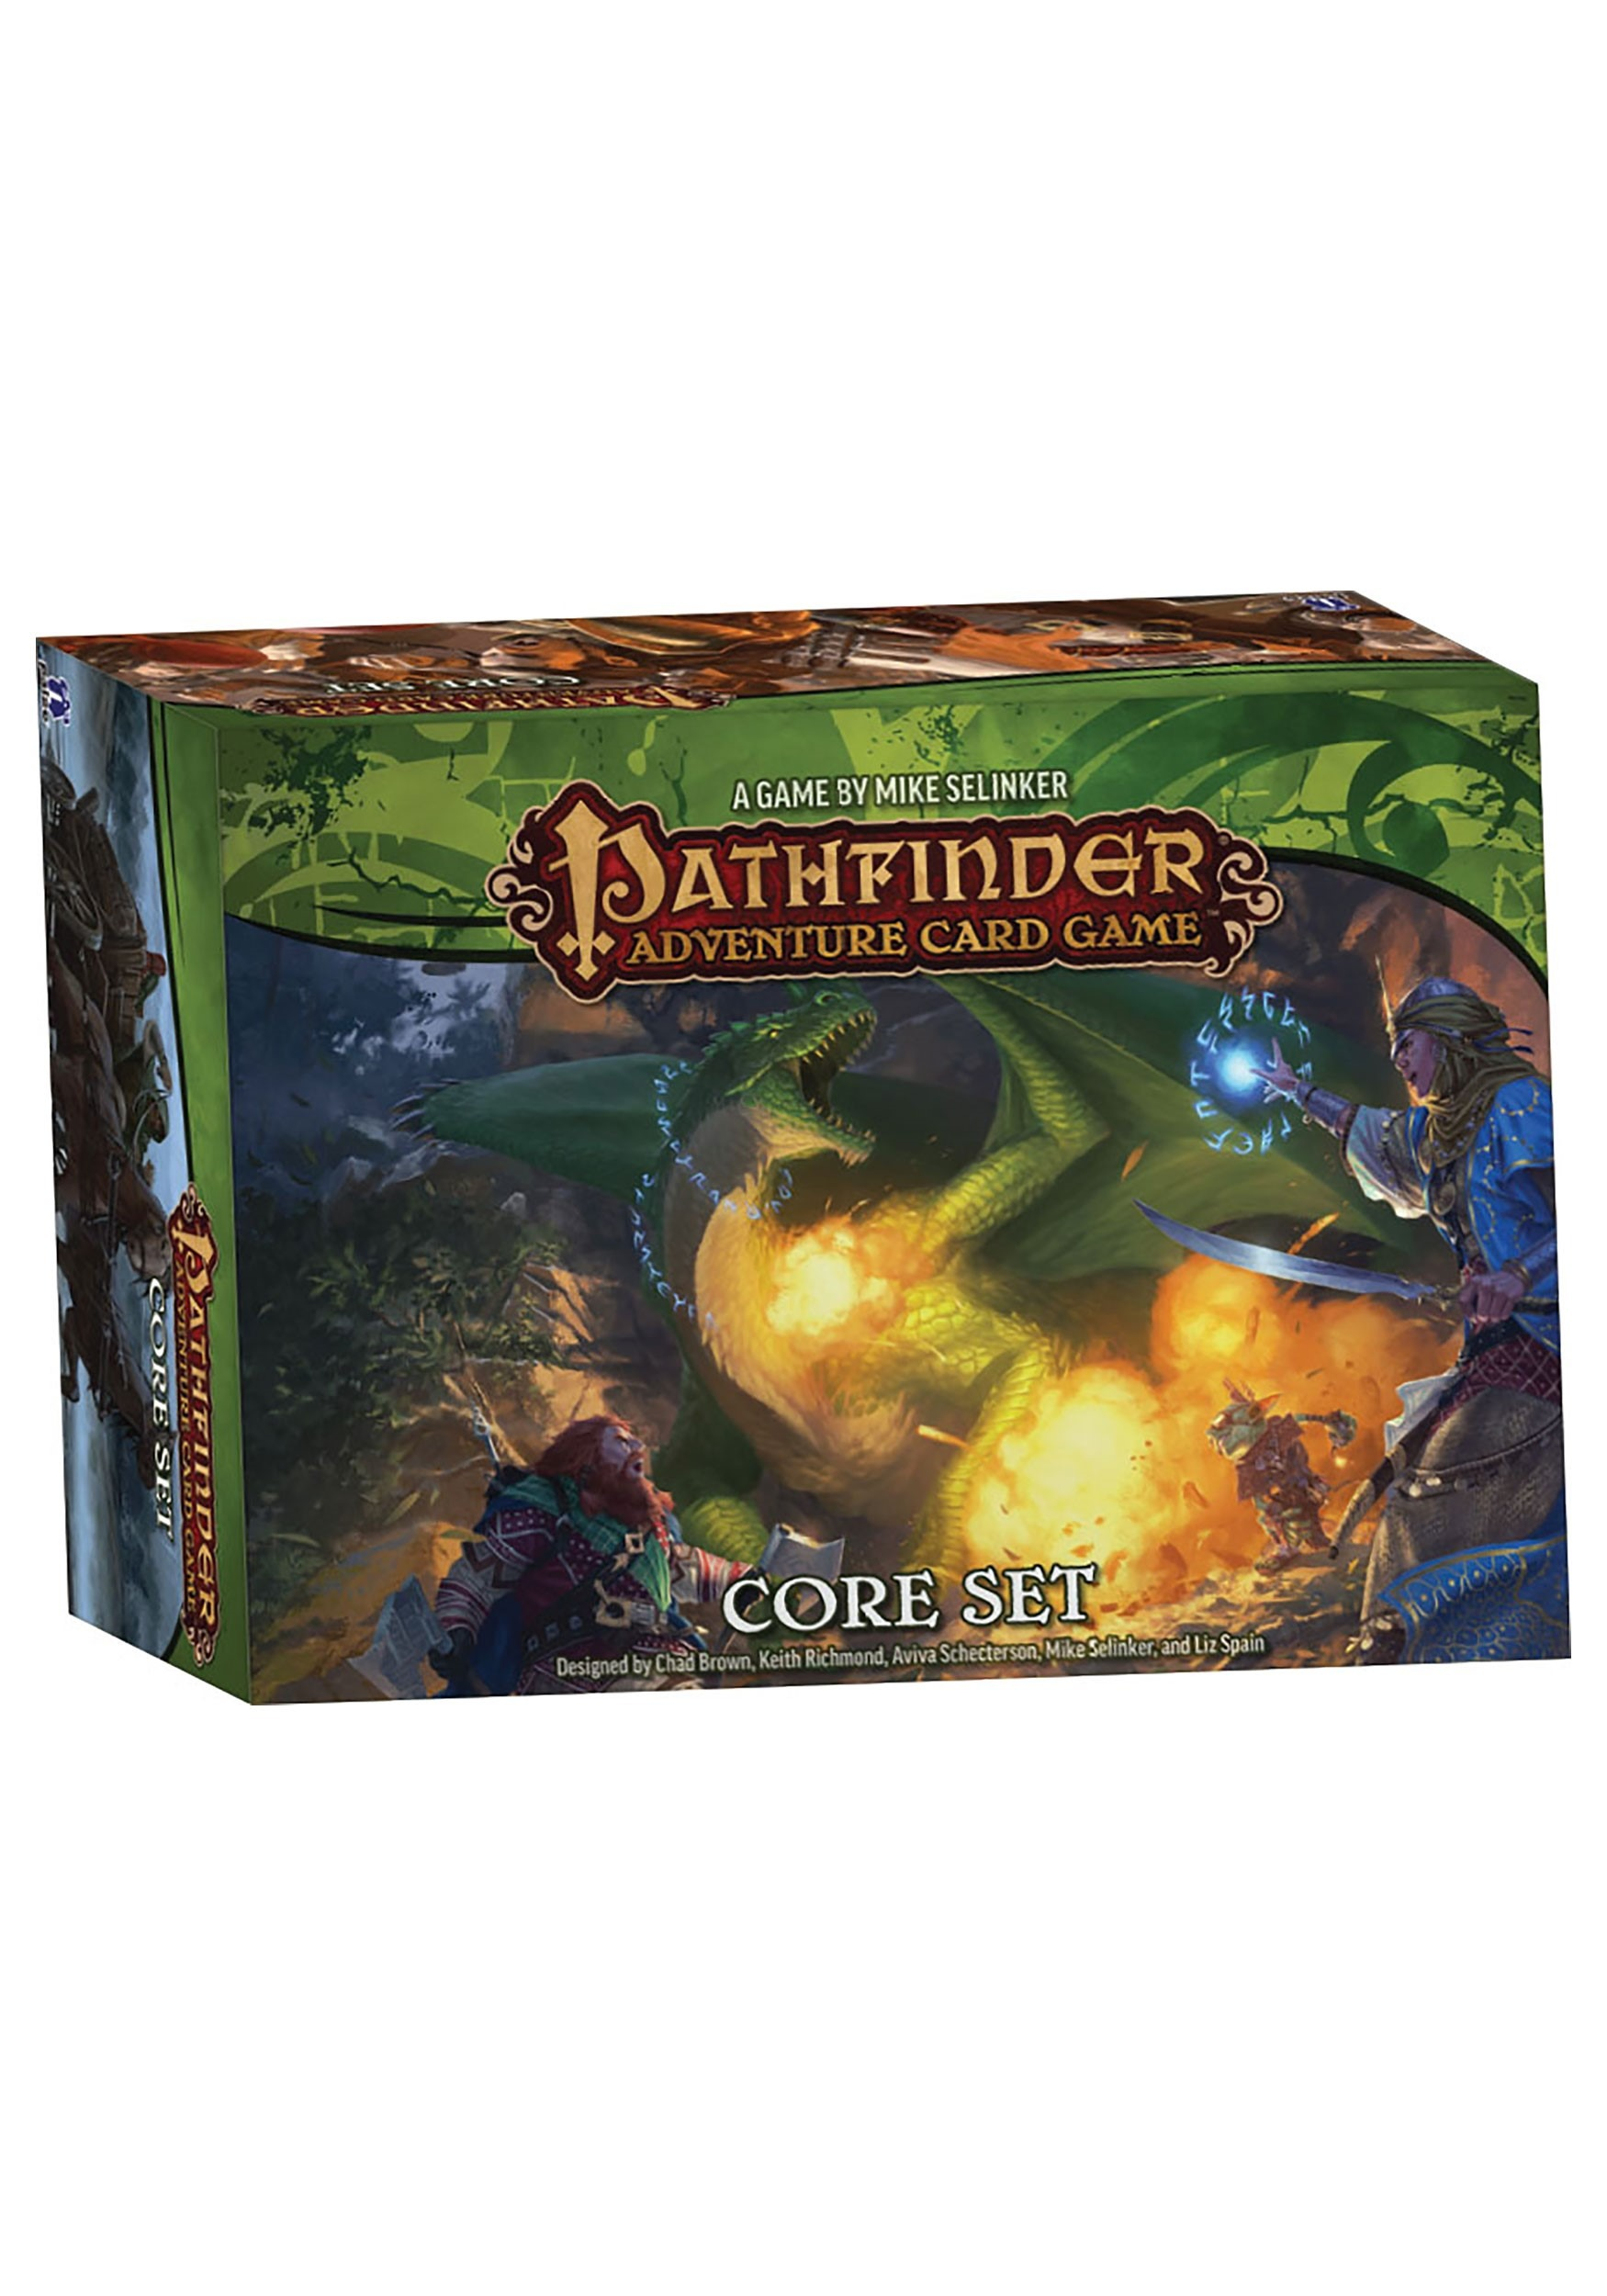 Core_Set:_Pathfinder_Adventure_Card_Game_(Revised_Edition)